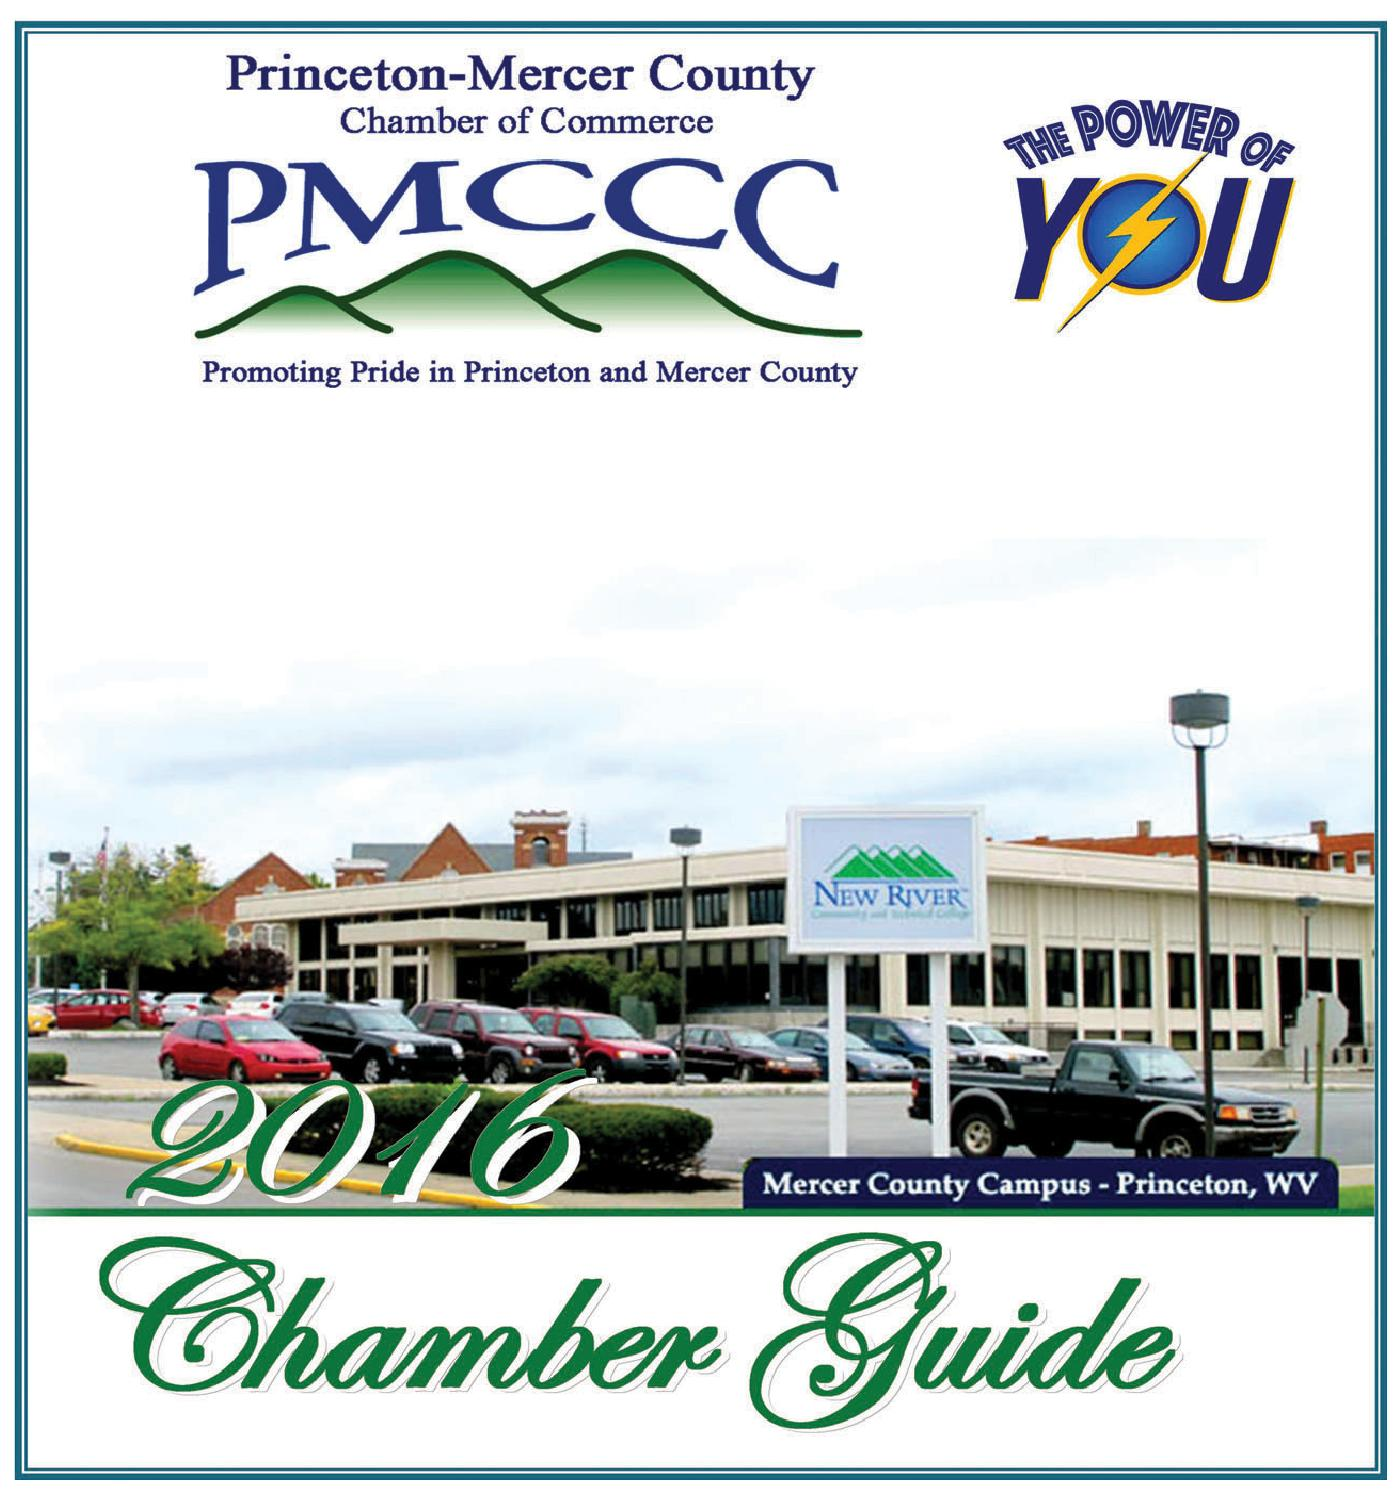 2016 Chamber Guide by Bluefield Daily Telegraph issuu